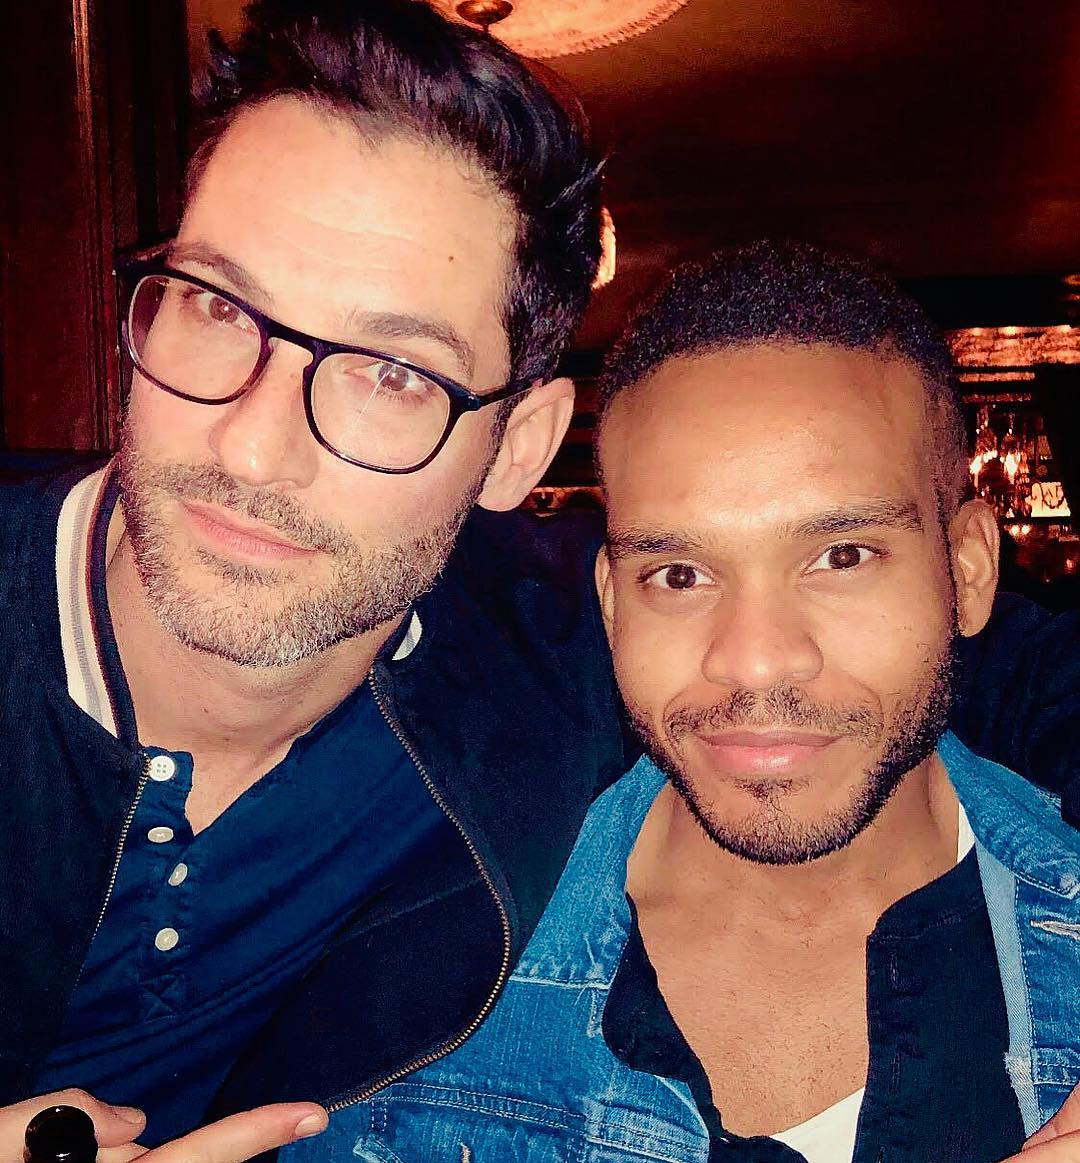 New Tom Ellis Picture Bts Lucifer Season 4: Pictures And Videos Of Tom Ellis From The Lucifer S4 Wrap